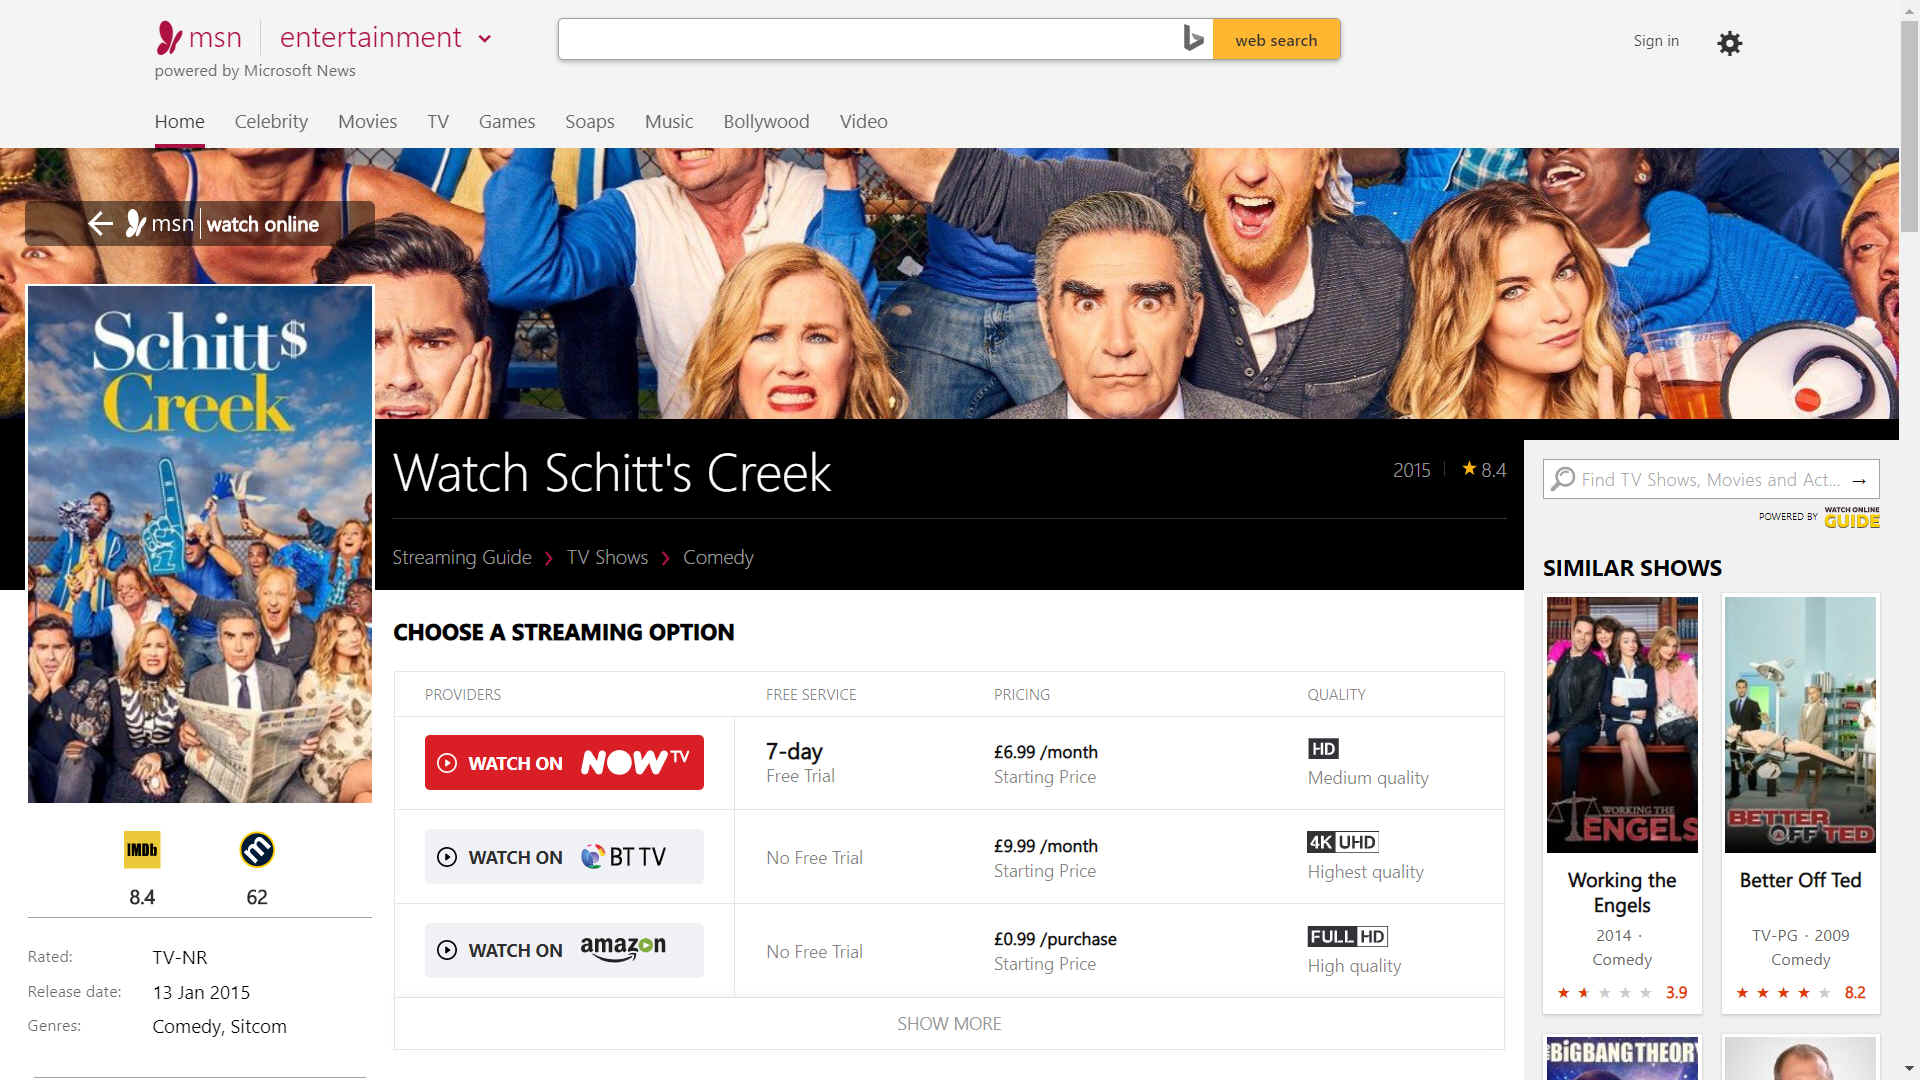 Watch Schitt's Creek on MSN and Netflicks